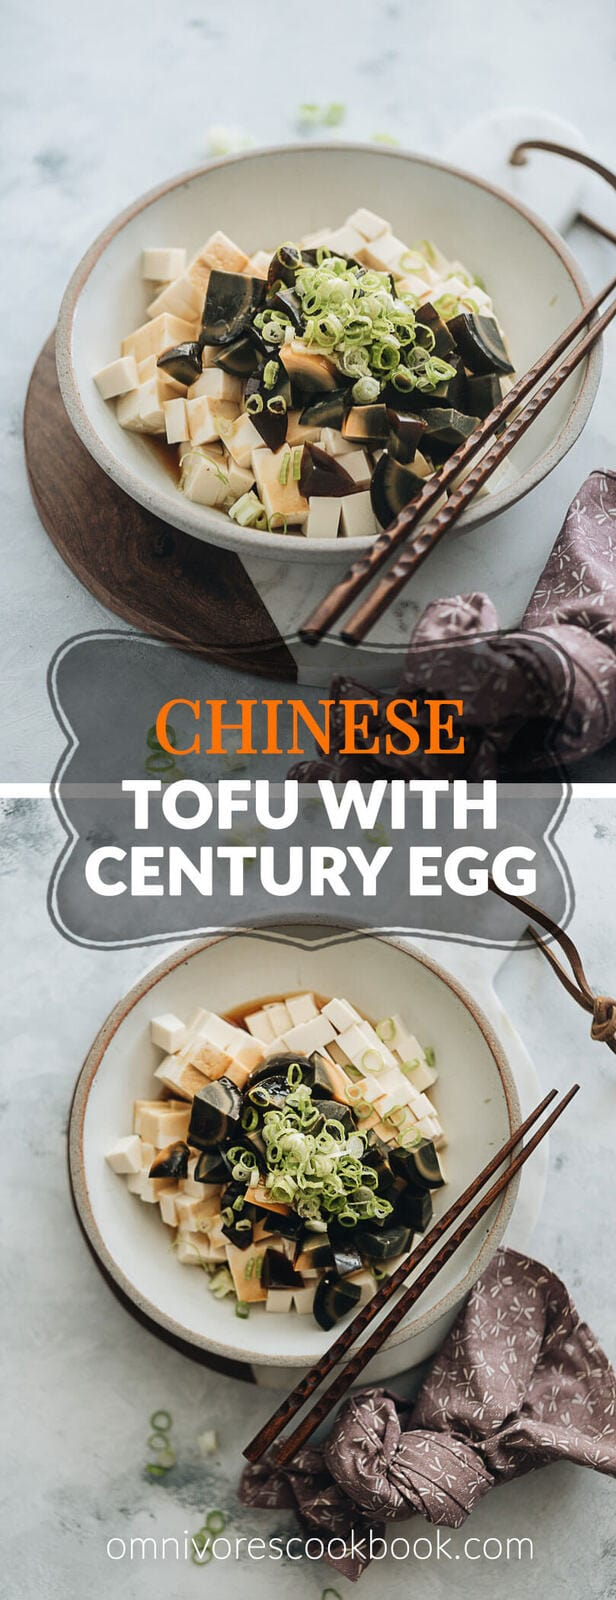 Tofu with Century Egg Salad - A childhood favorite and a popular diner food, the tofu with century egg salad requires just five ingredients and takes five minutes to make. Experiment with this new ingredient if you're interested in discovering what people eat in China. {Gluten-Free adaptable}